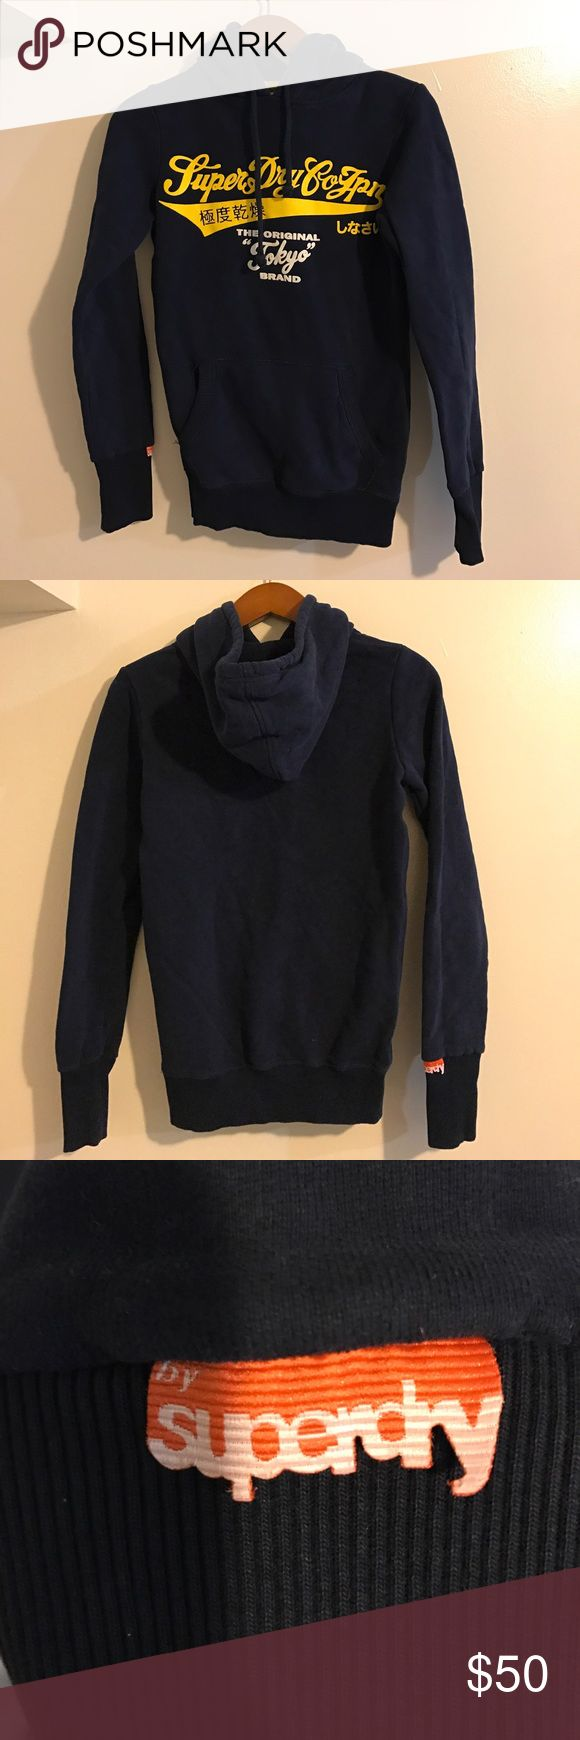 Superdry hoodie Worn once/ navy hoodie with yellow and white lettering/ one middle two way pocket/ orange superdry logo on end of sleeve Superdry Tops Sweatshirts & Hoodies